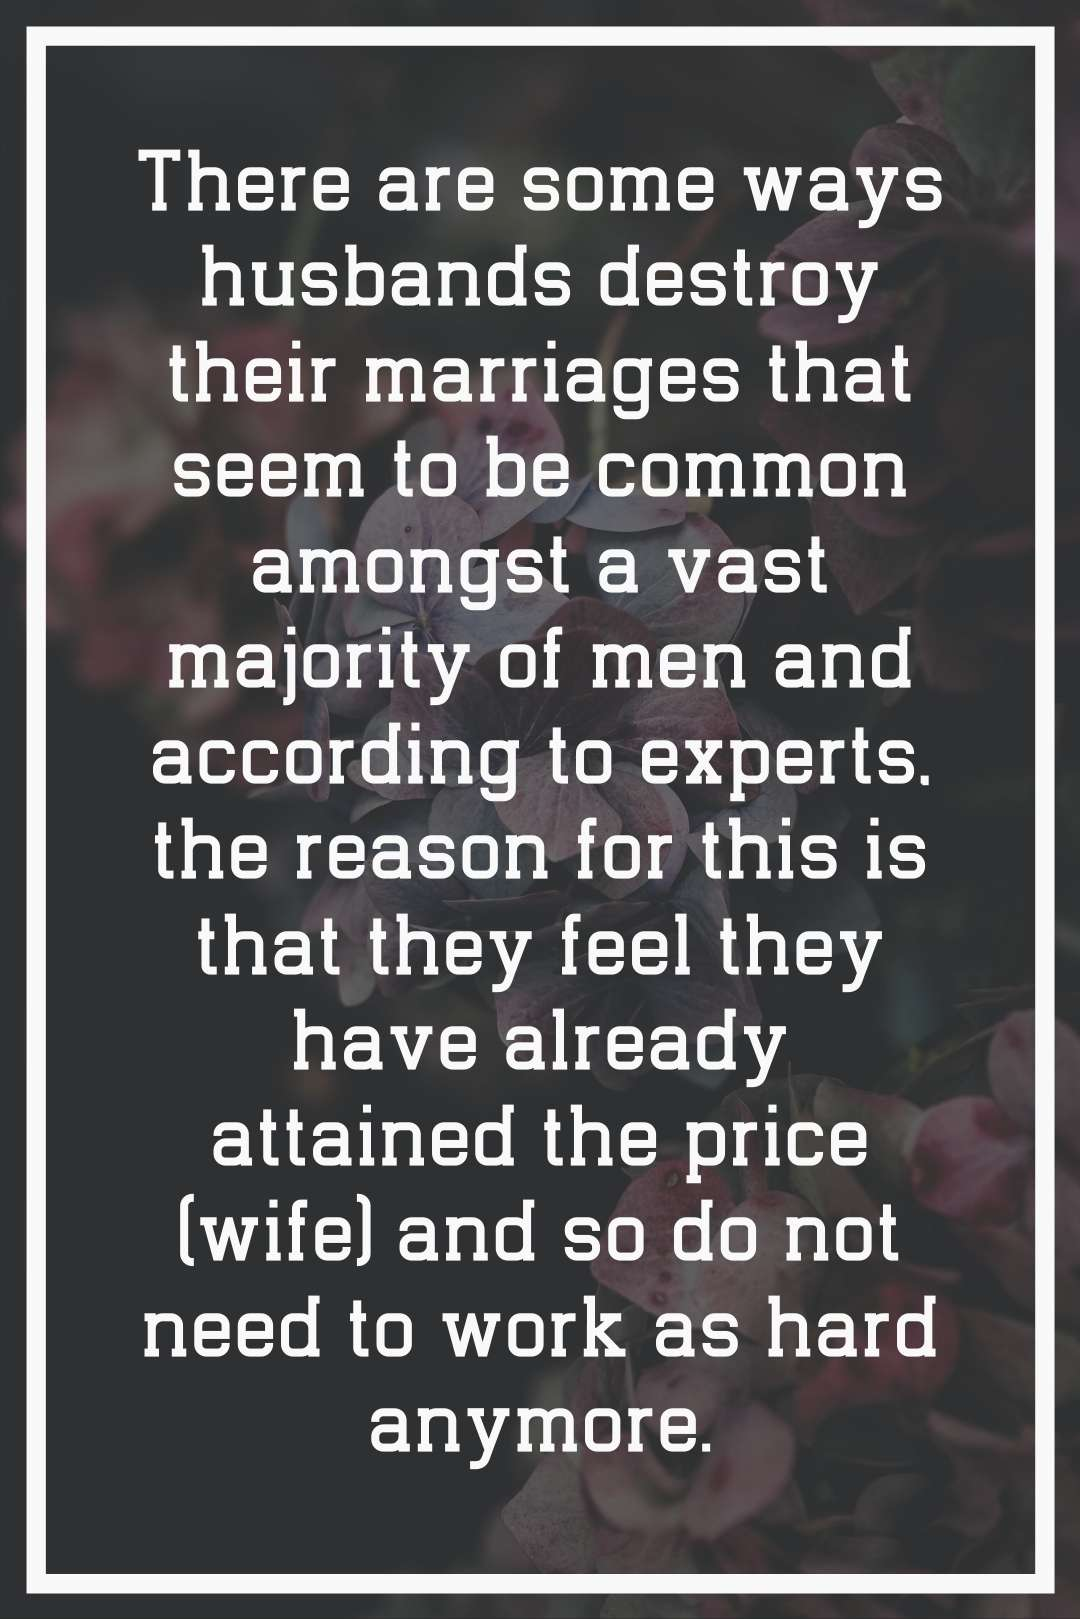 There are some ways husbands destroy their marriages that seem to be common amongst a vast majority of men and according to experts, the reason for this is that they feel they have already attained the price (wife) and so do not need to work as hard anymore.